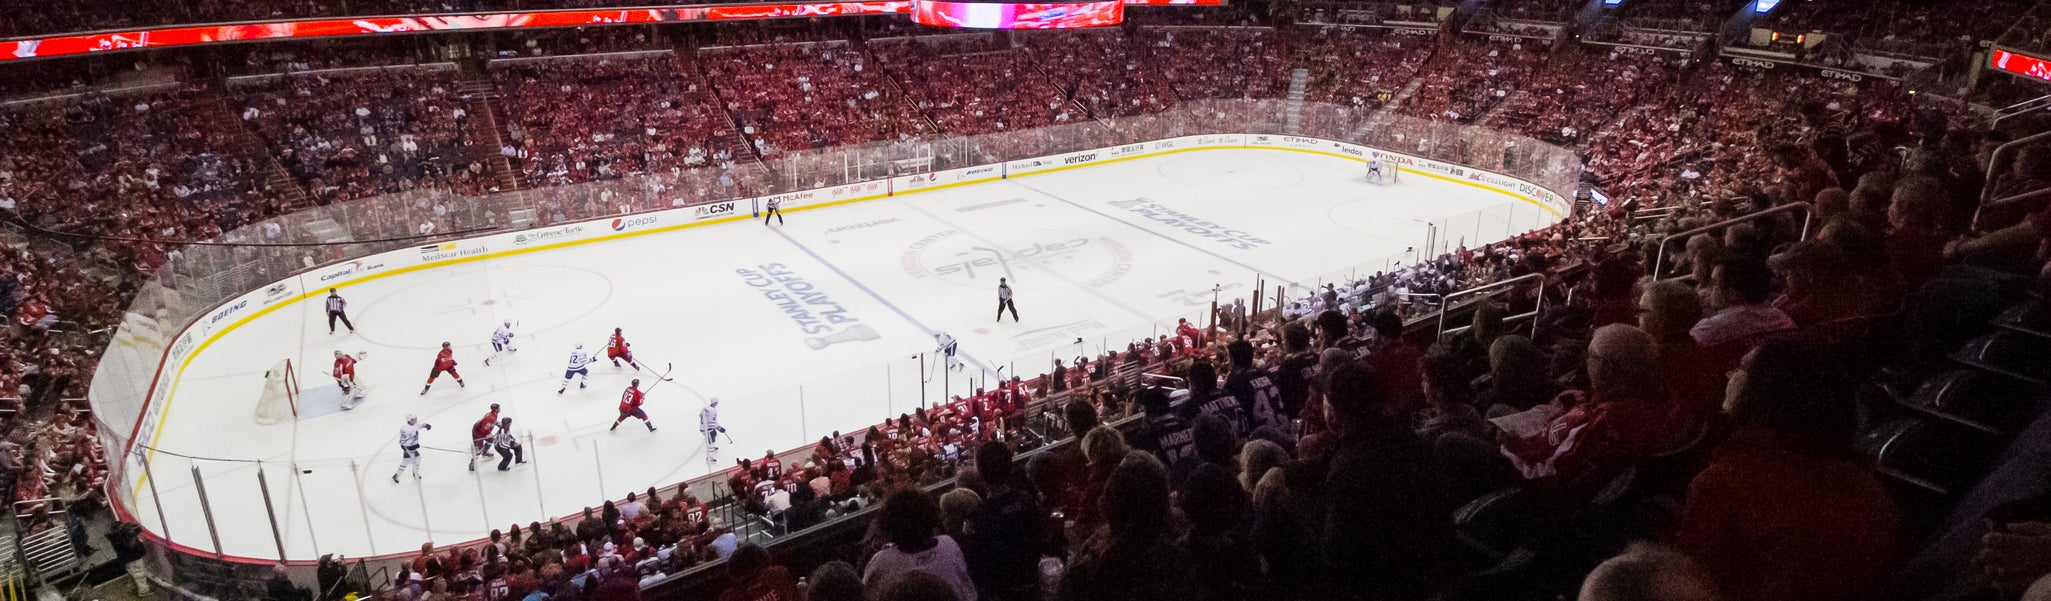 Seat view from Acela Level Corner 228 at Capital One Arena